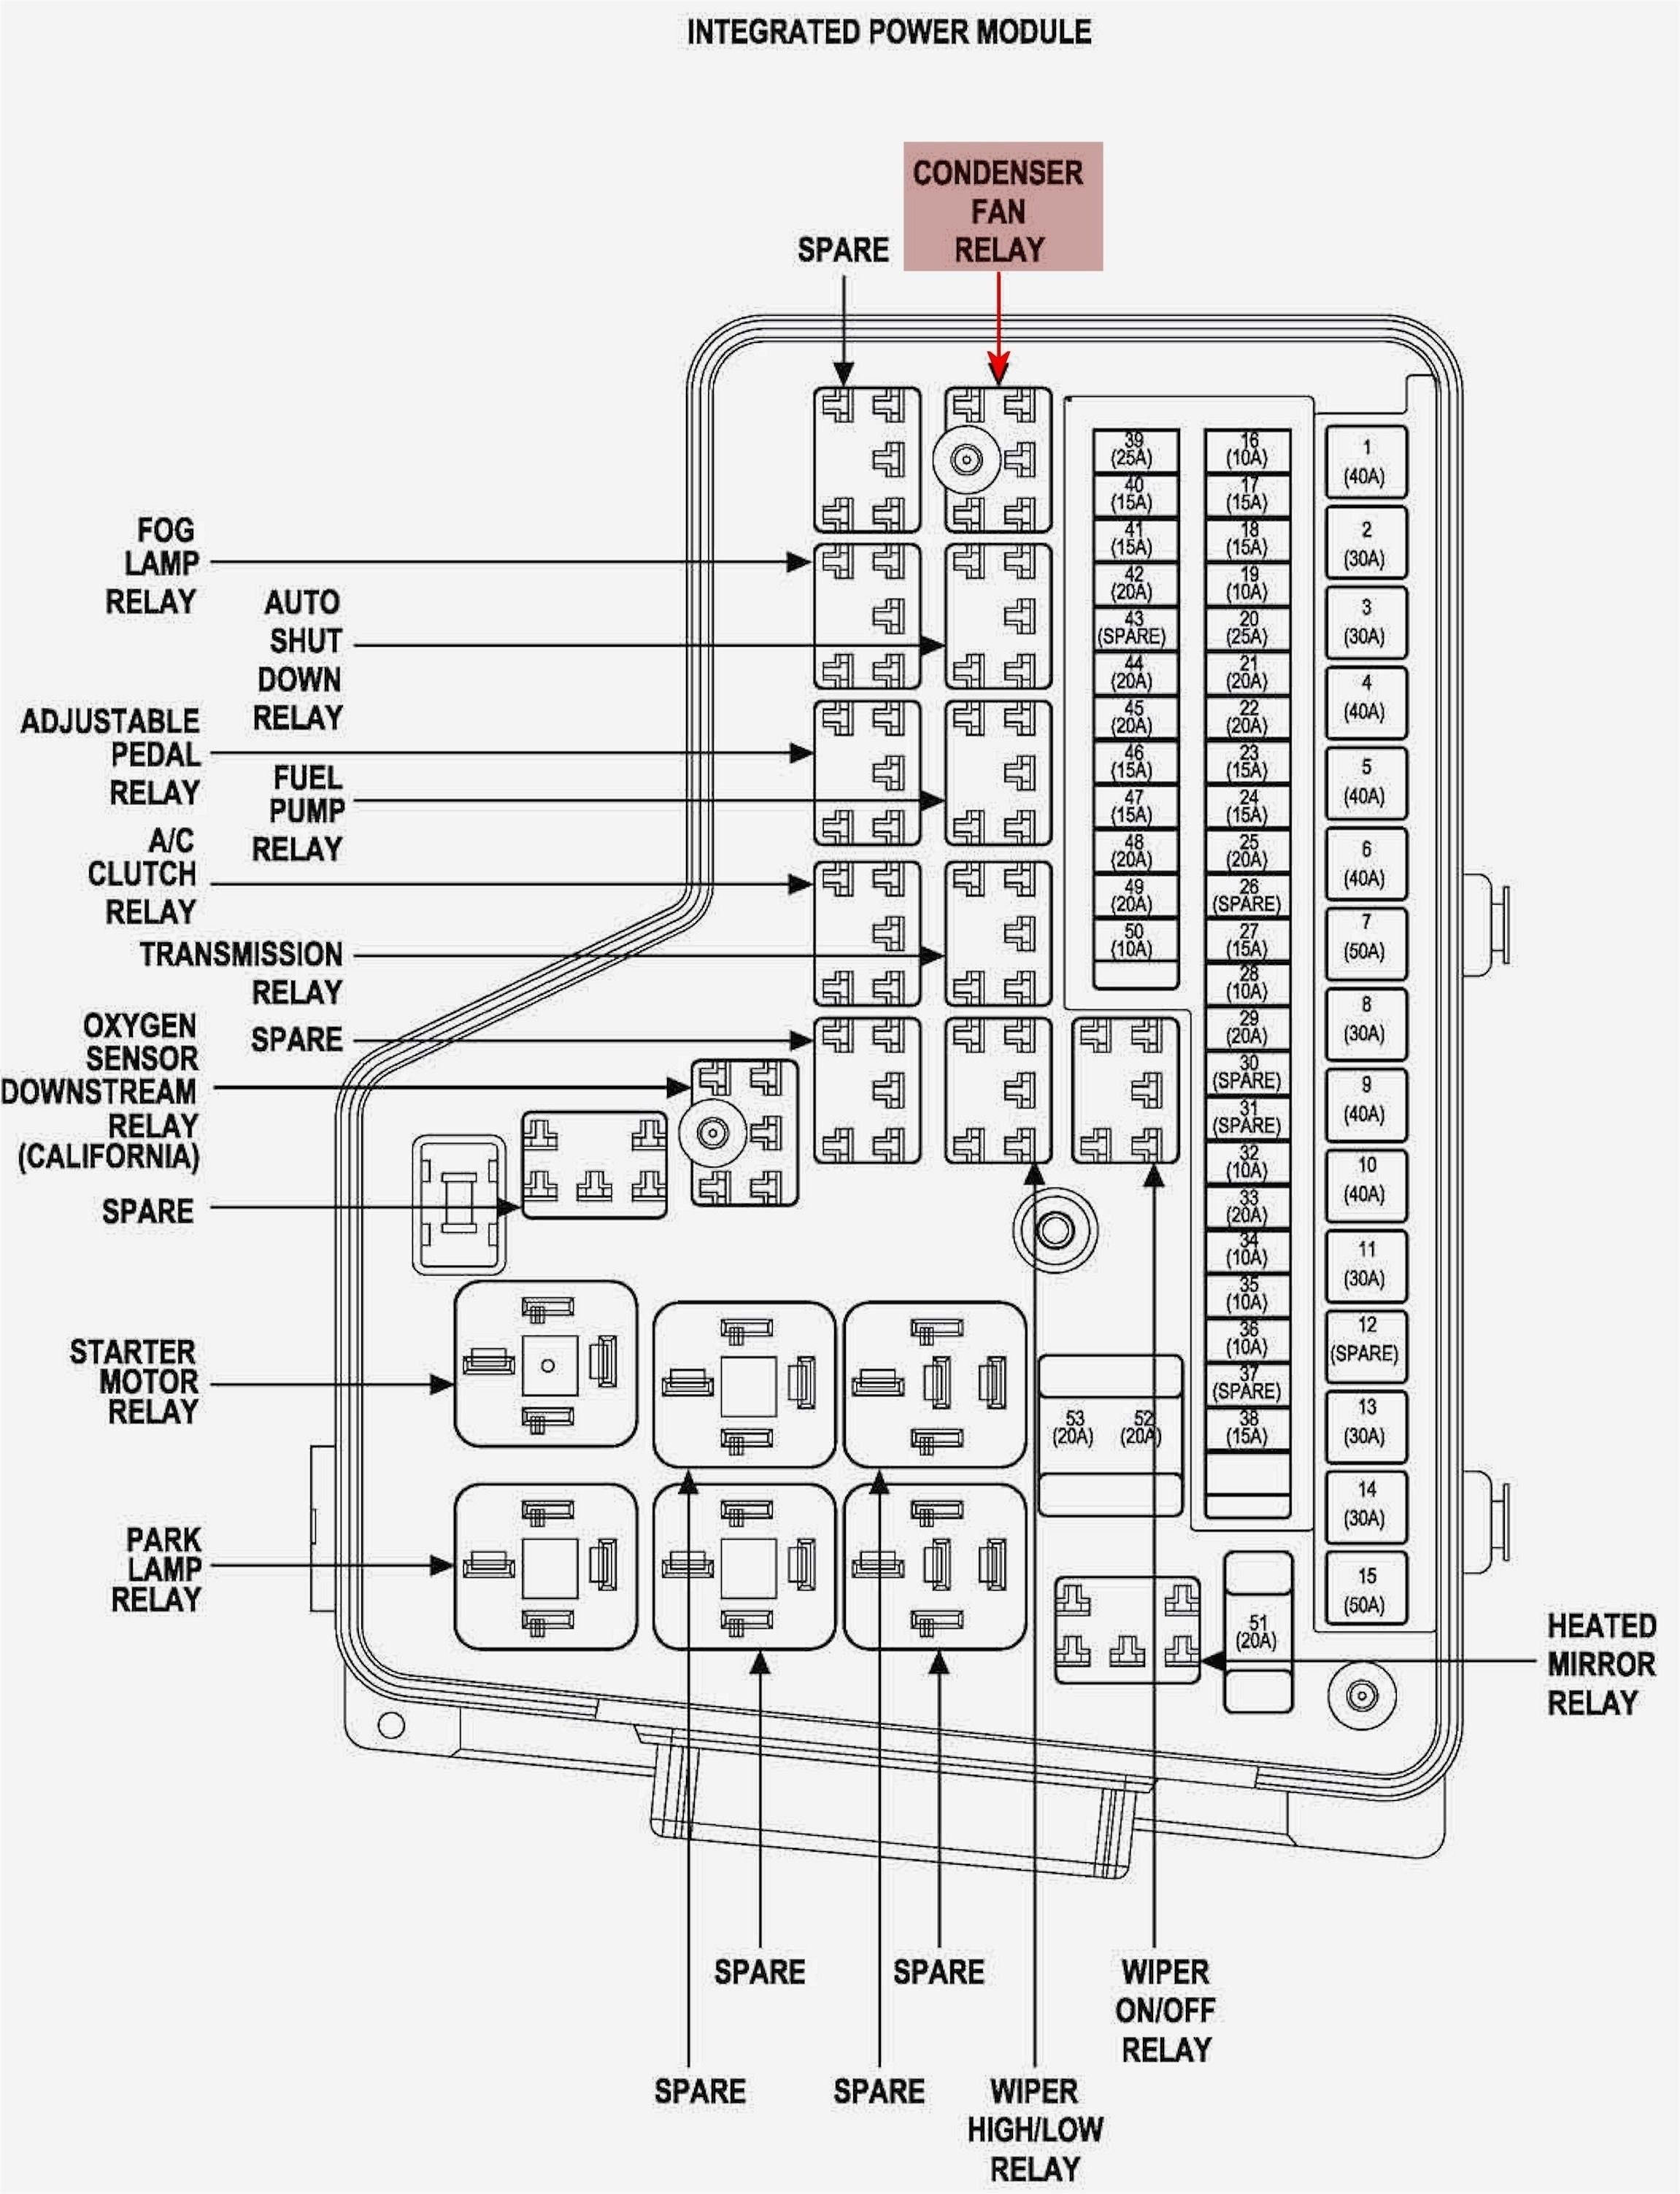 Unique Wiring Diagram 2005 Dodge Ram 1500 #diagram #diagramsample  #diagramtemplate #wiringdiagram #diagramchart #worksheet #w… | Dodge ram  1500, Ram 1500, Dodge ramPinterest